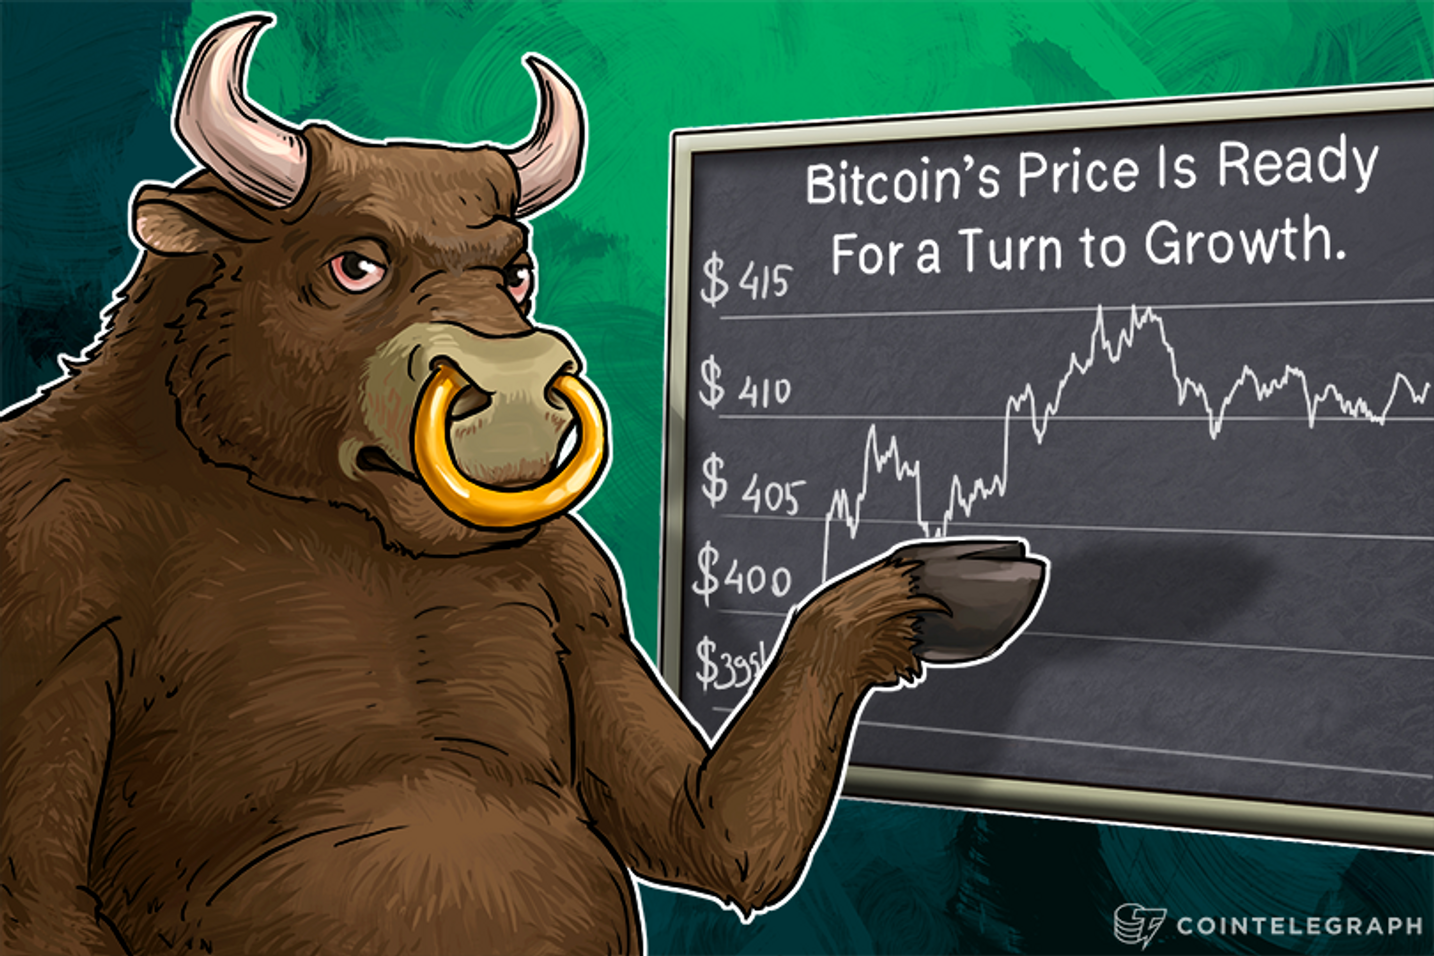 Bitcoin's Price Is Ready For a Turn to Growth